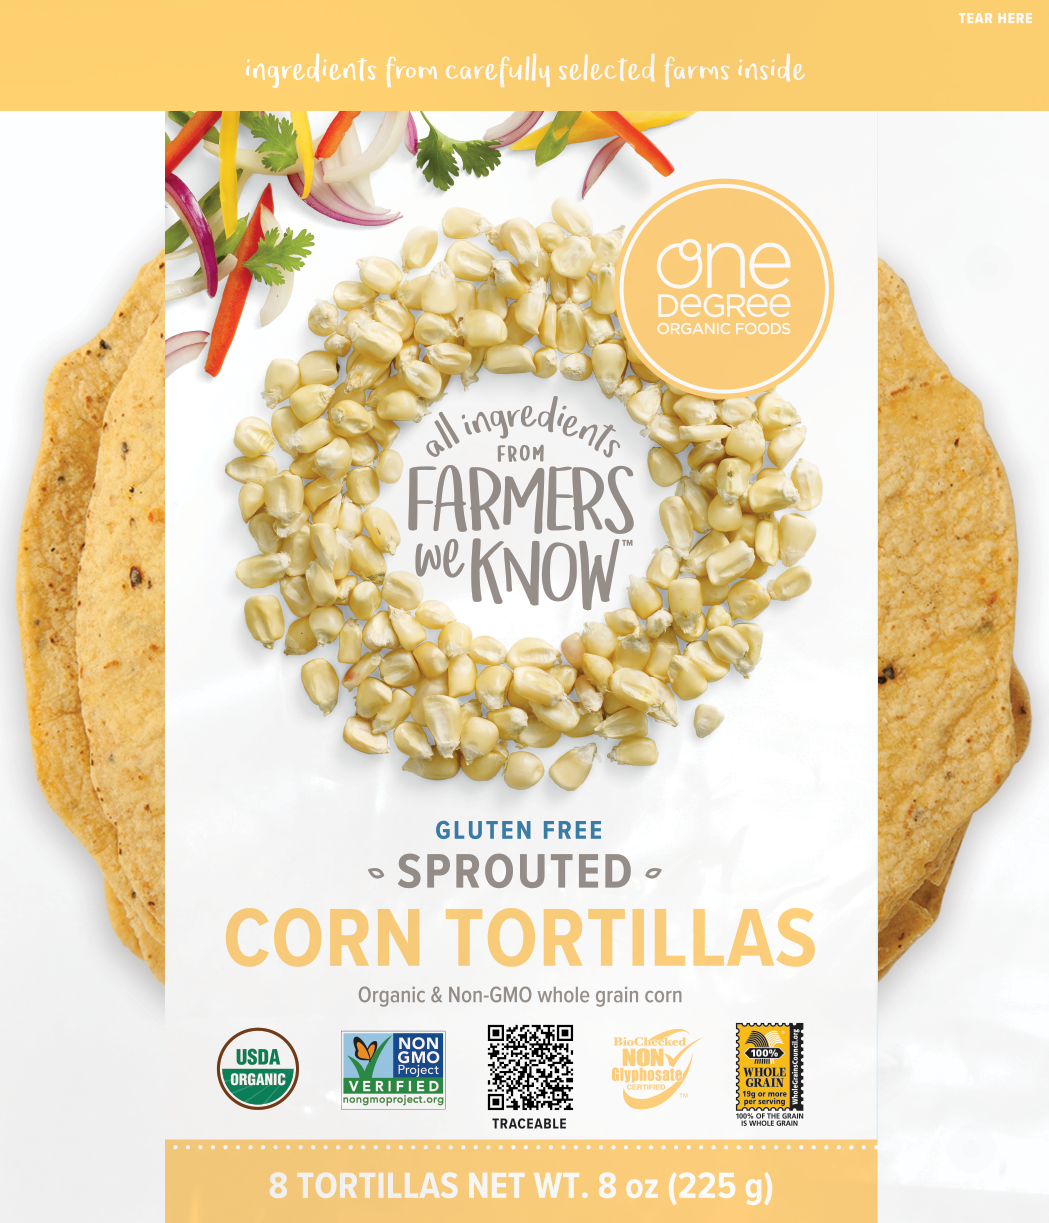 Sprouted Gluten Free Corn Tortilla - One Degree Organics